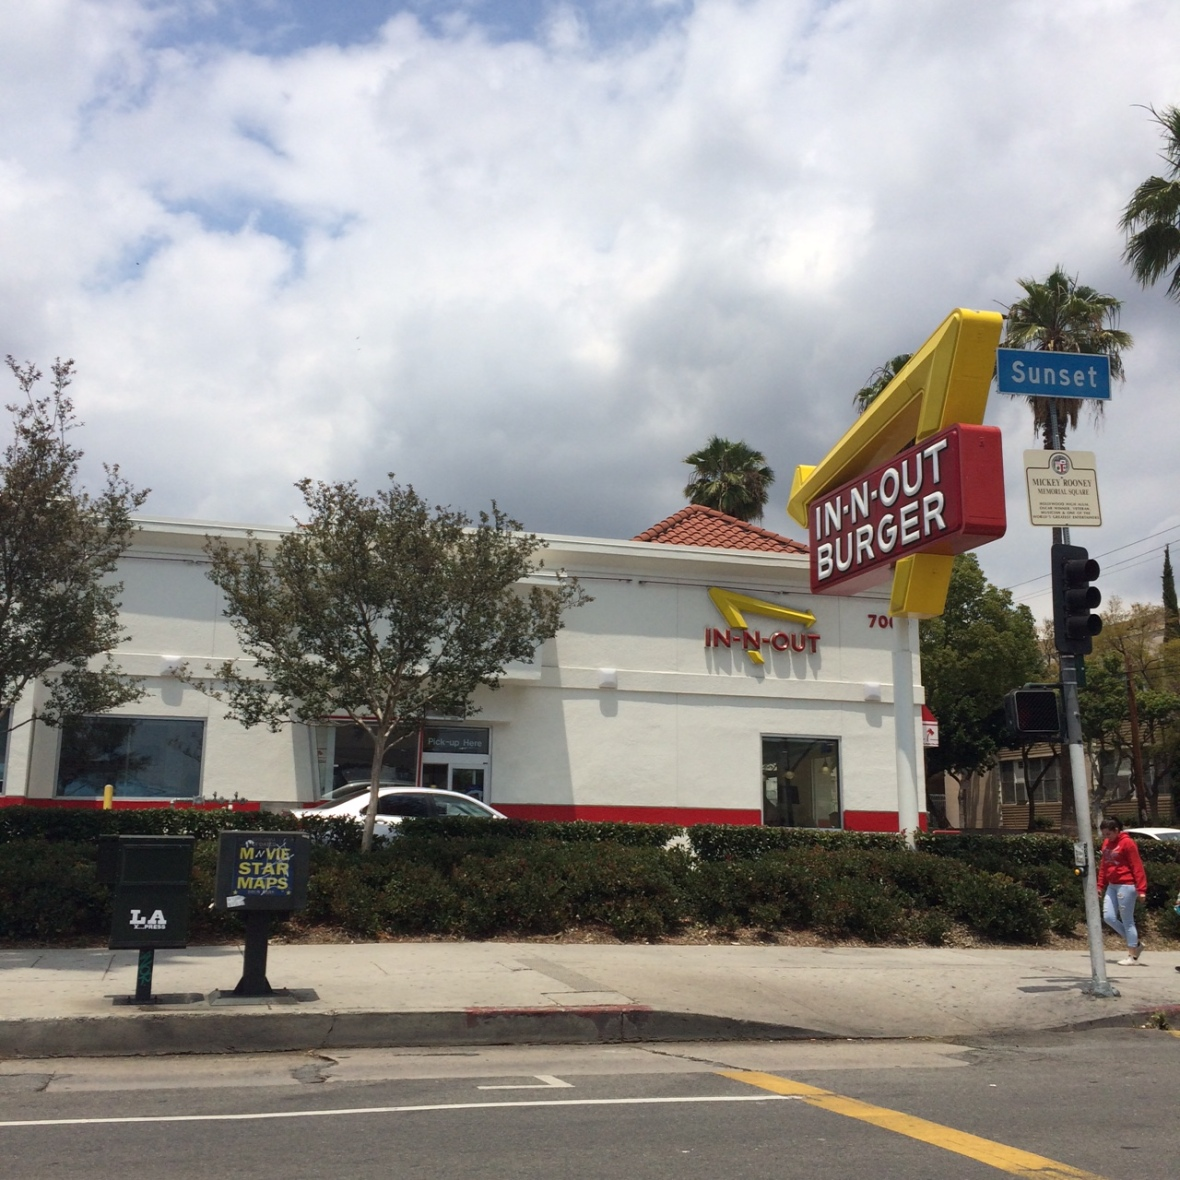 In-N-Out Burger on Sunset